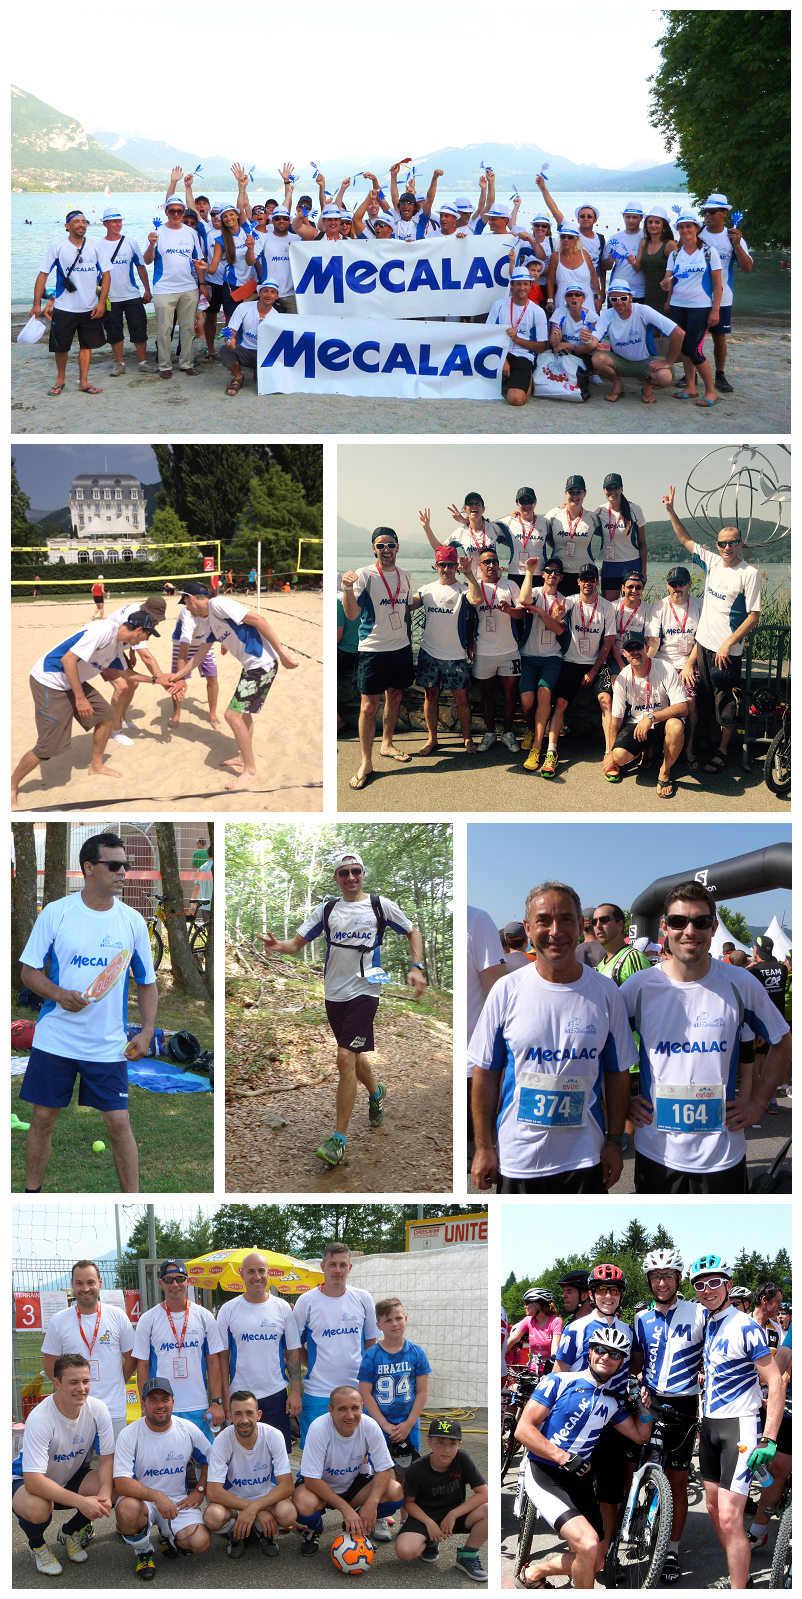 I colori di Mecalac ai Corporate Games 2015